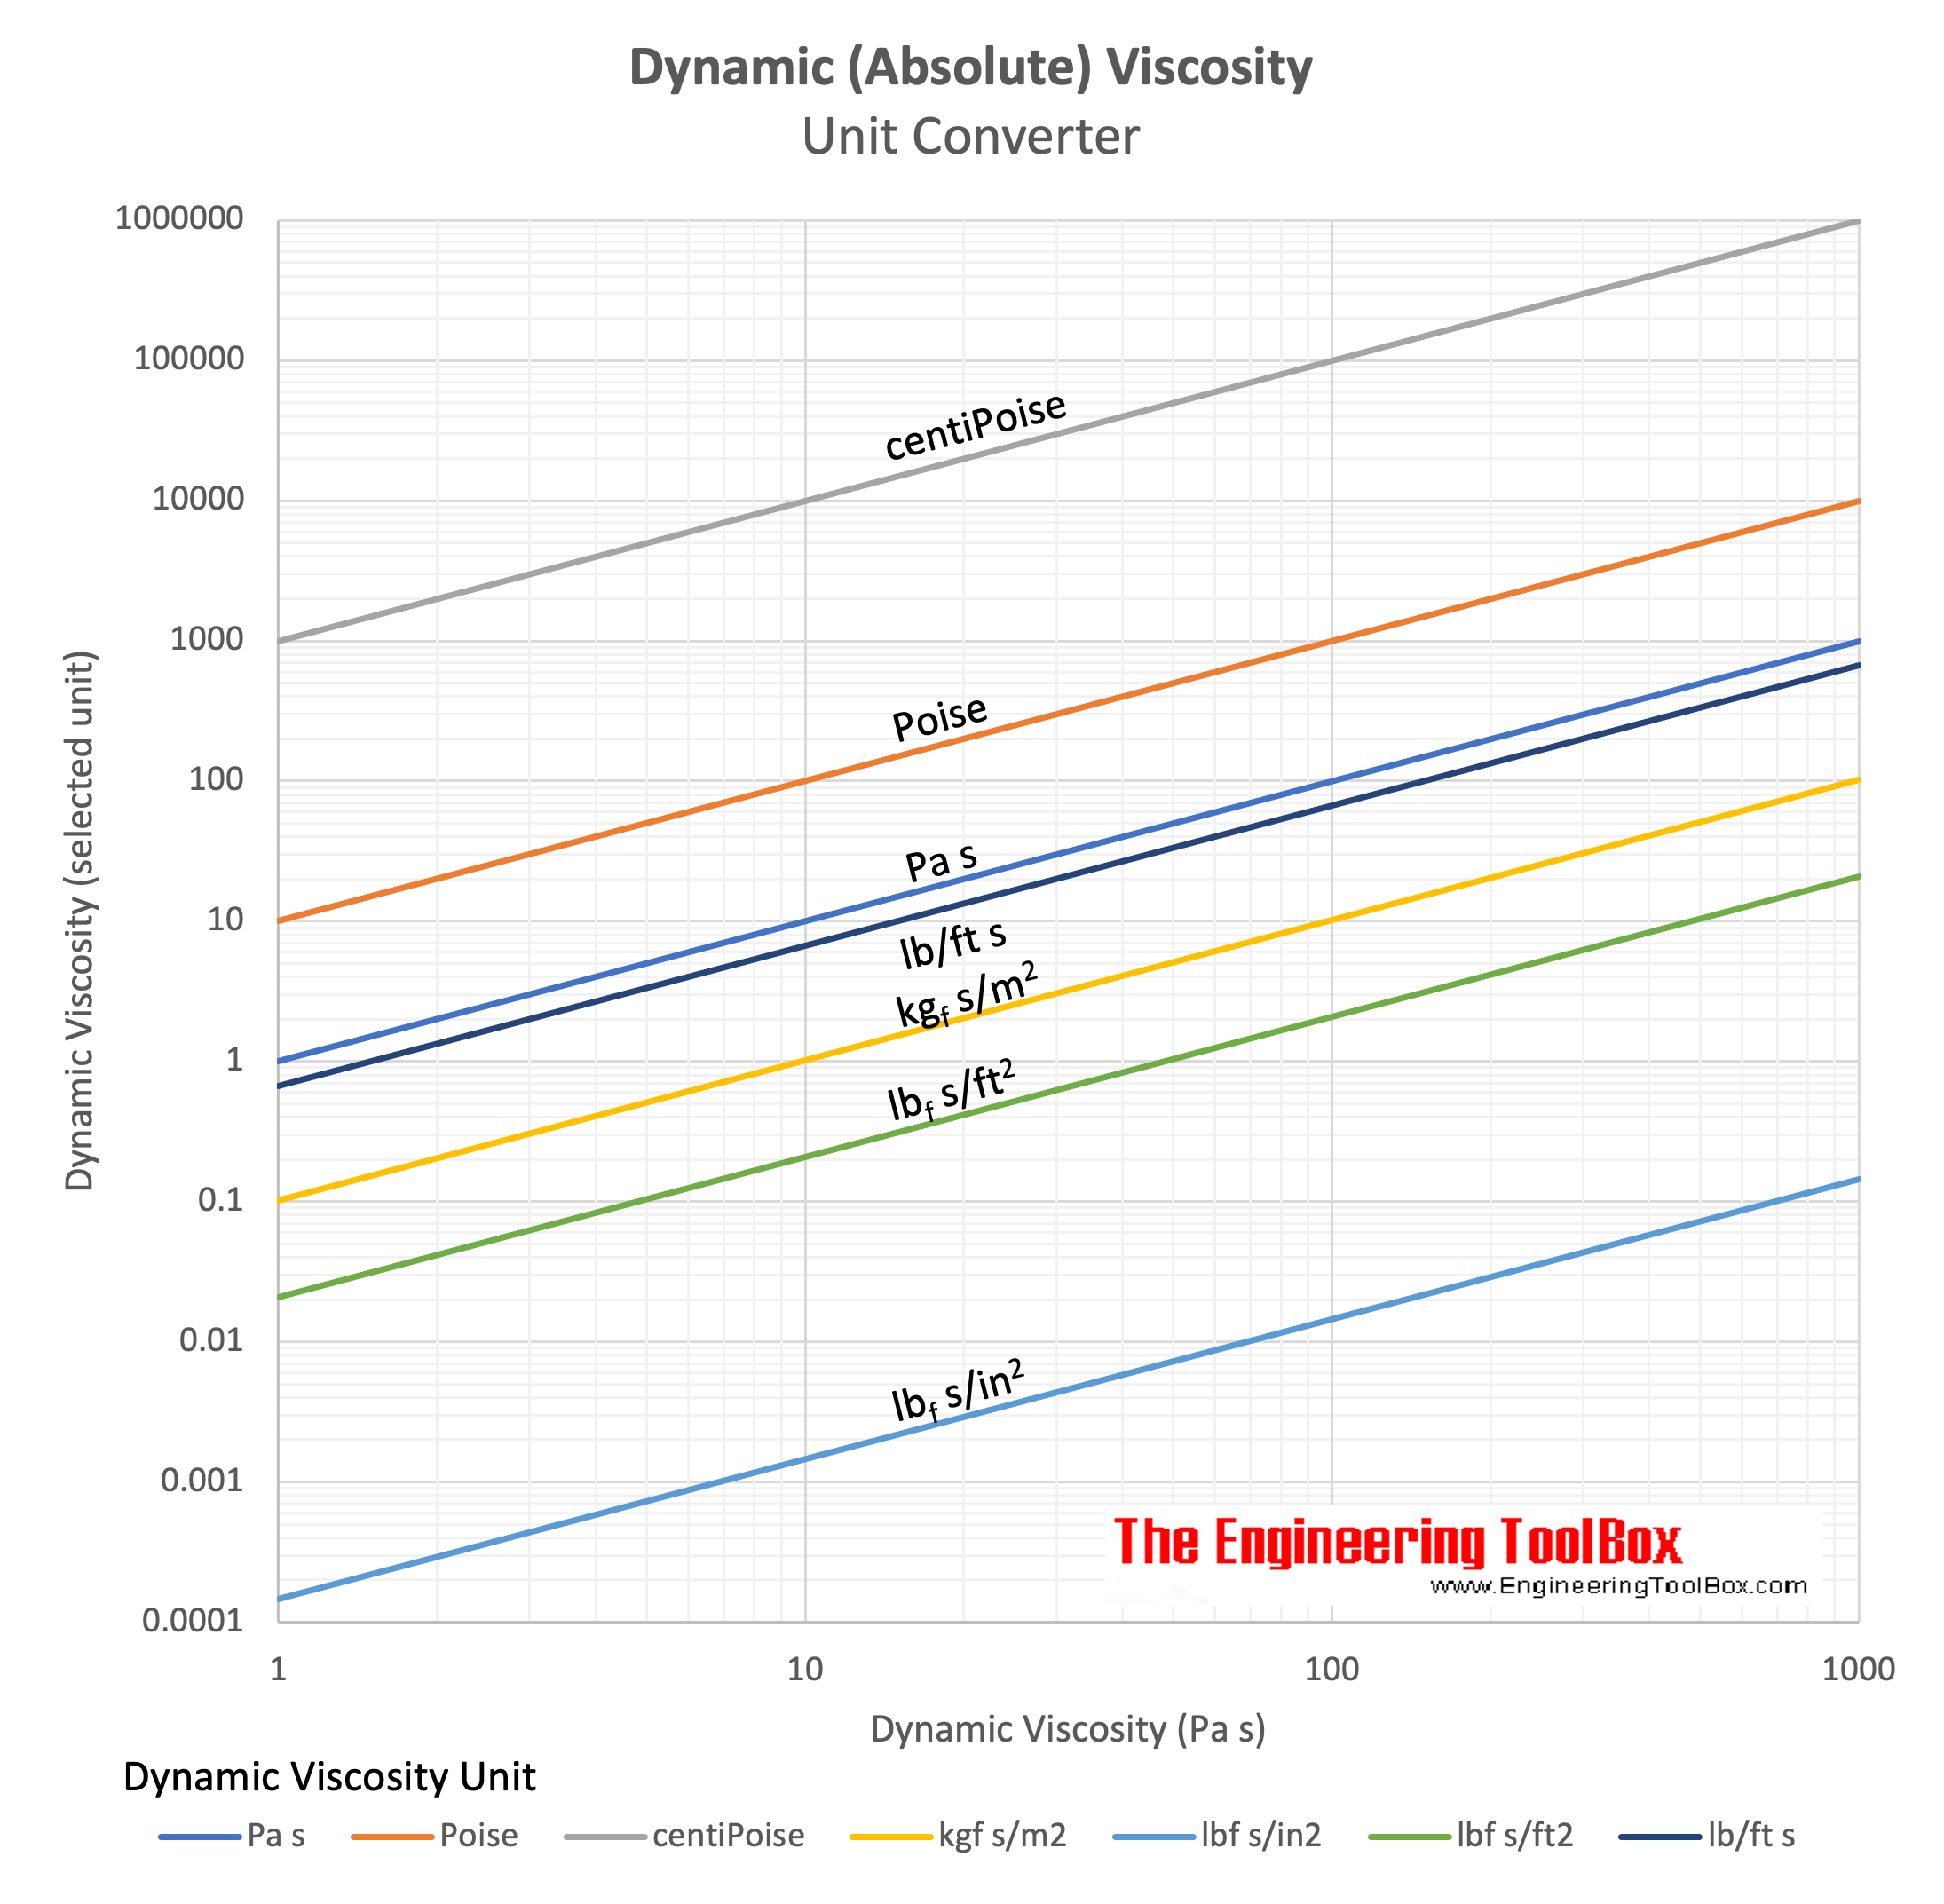 Dynamic Viscosity Unit Converter chart